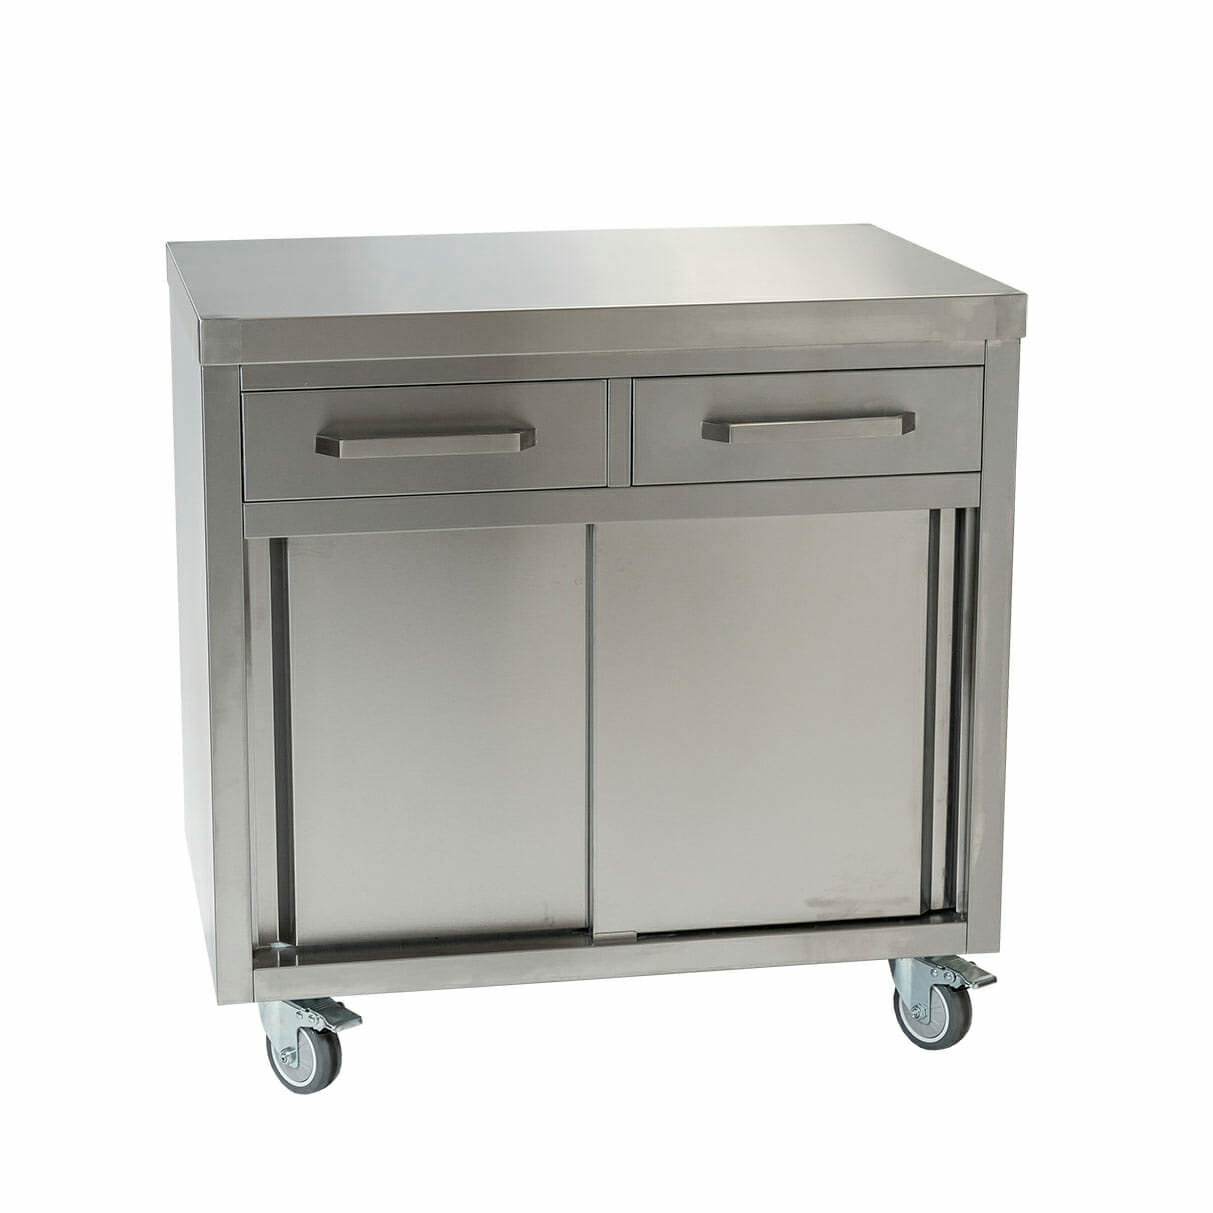 Stainless Cabinet, 900 x 610 x 900mm high